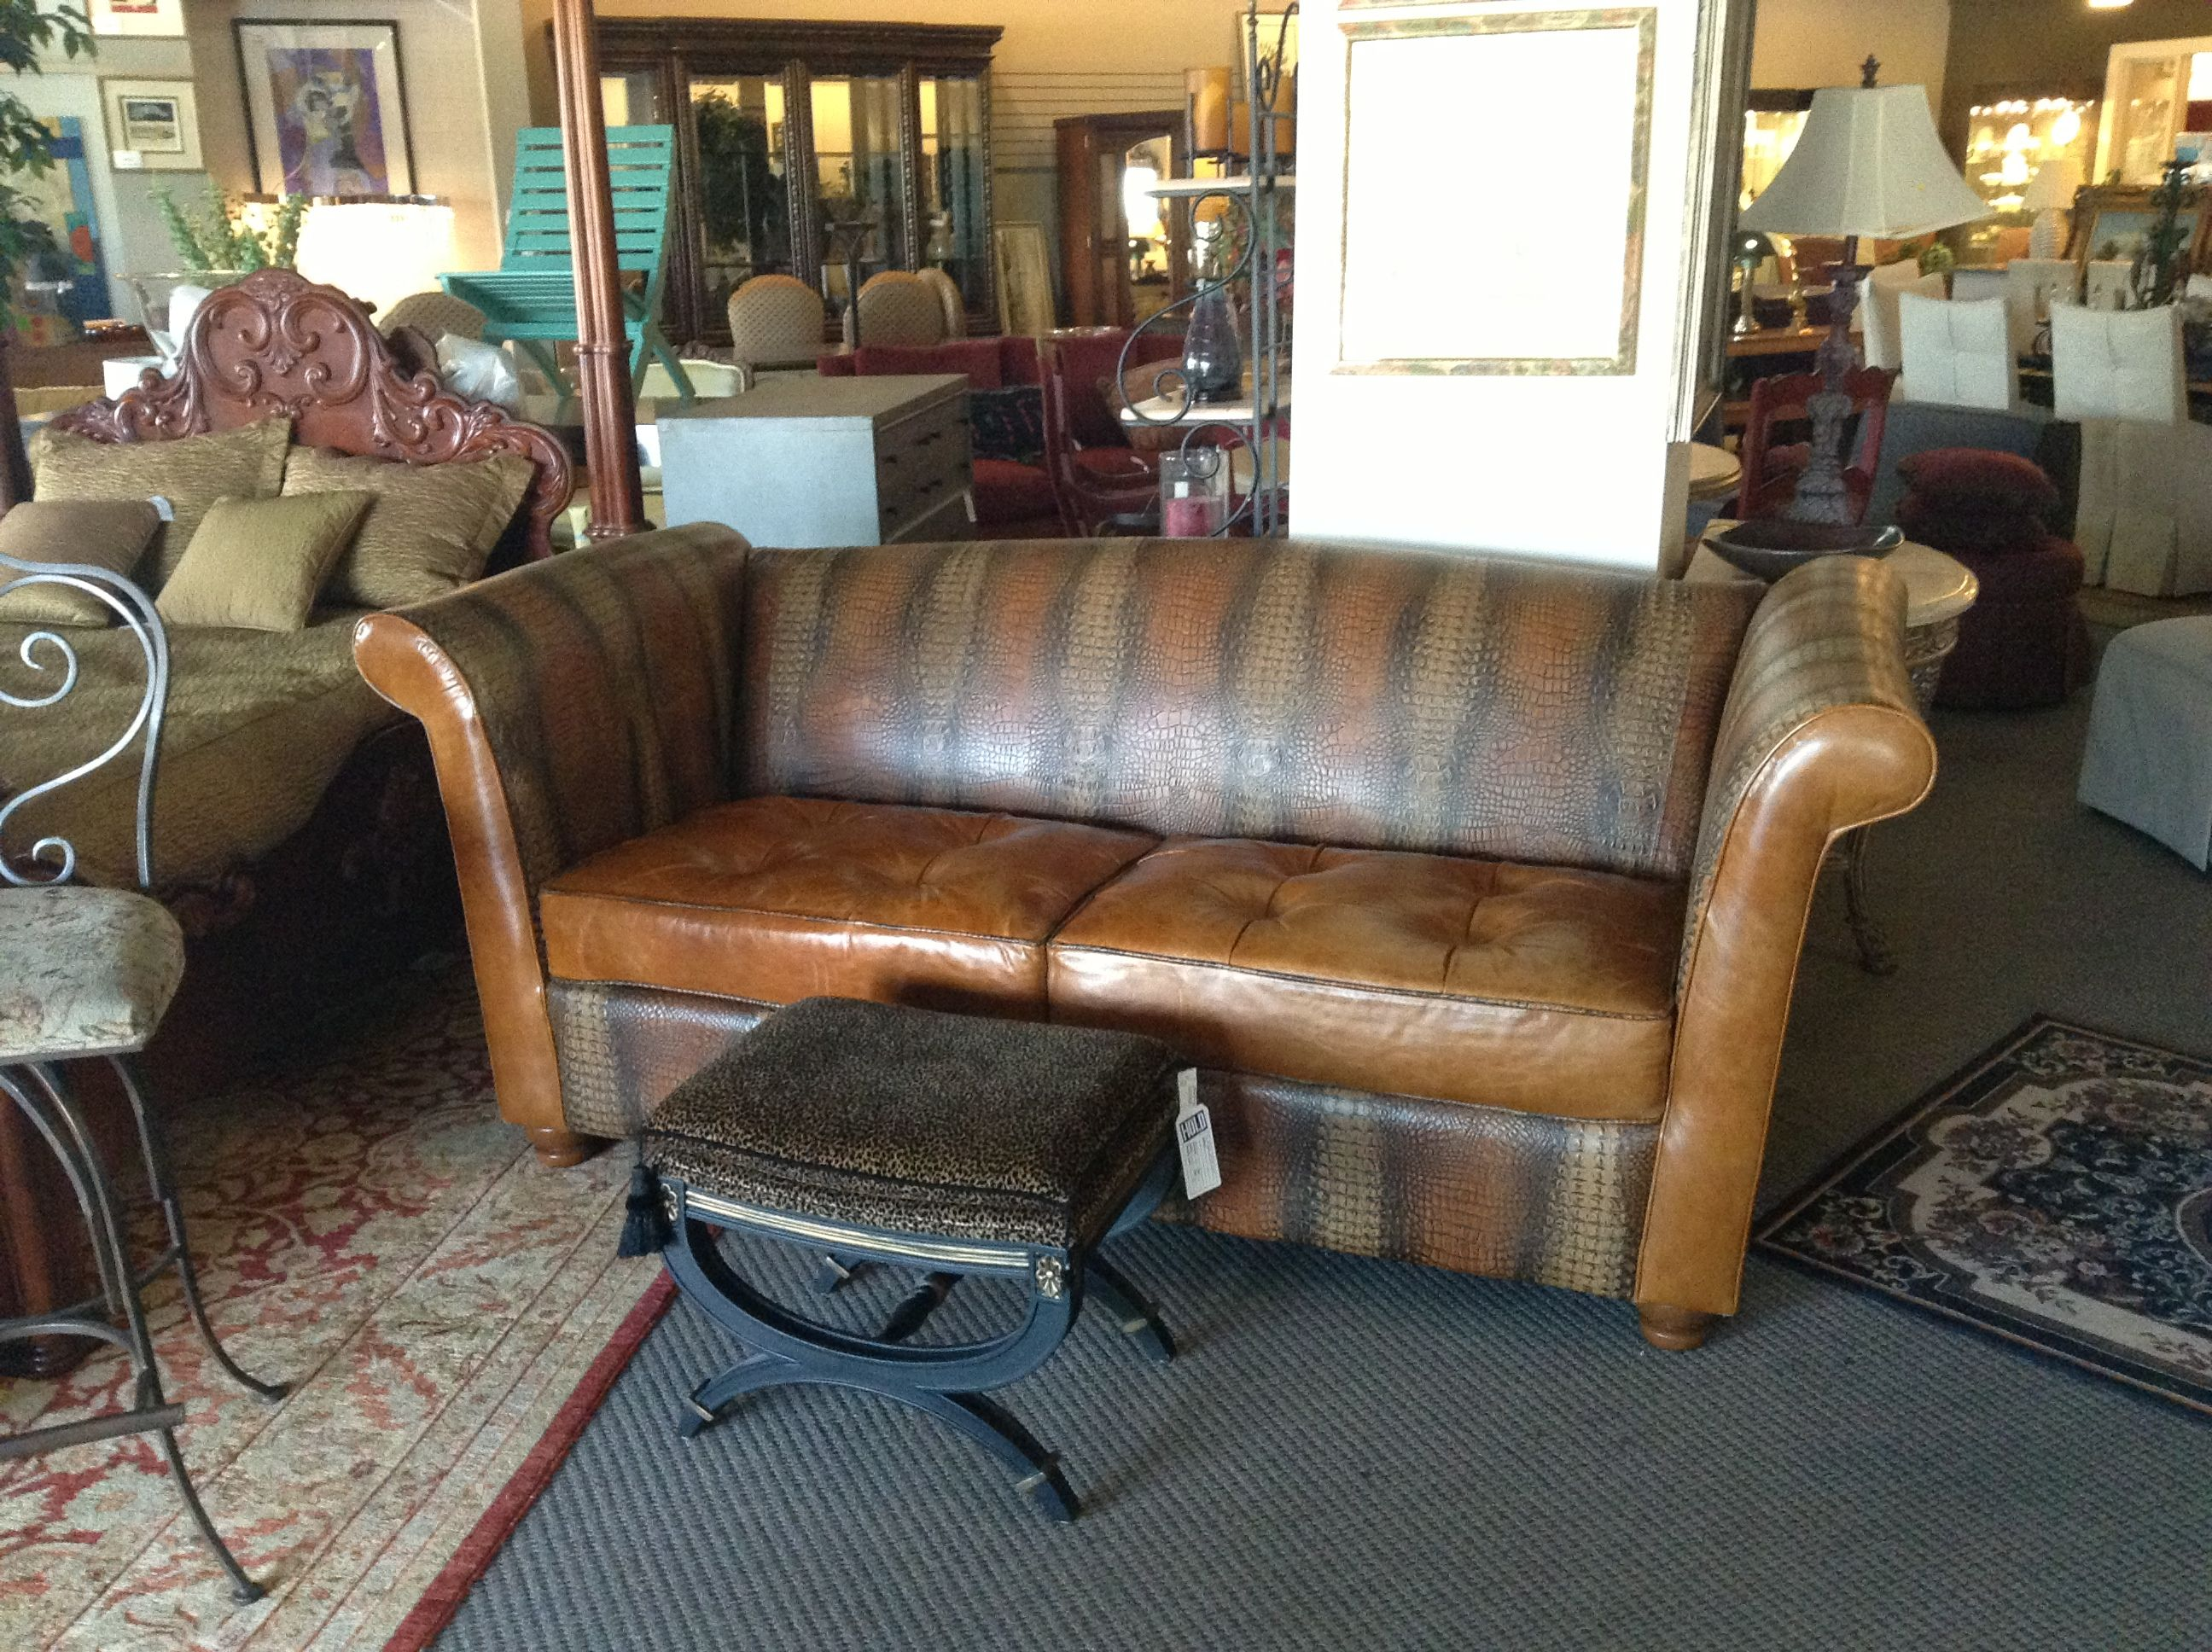 Living Room Furniture Sets Austin Tx English Country Images Leather Sofa With Embossed Alligator Print Found At Design Consignment In Texas